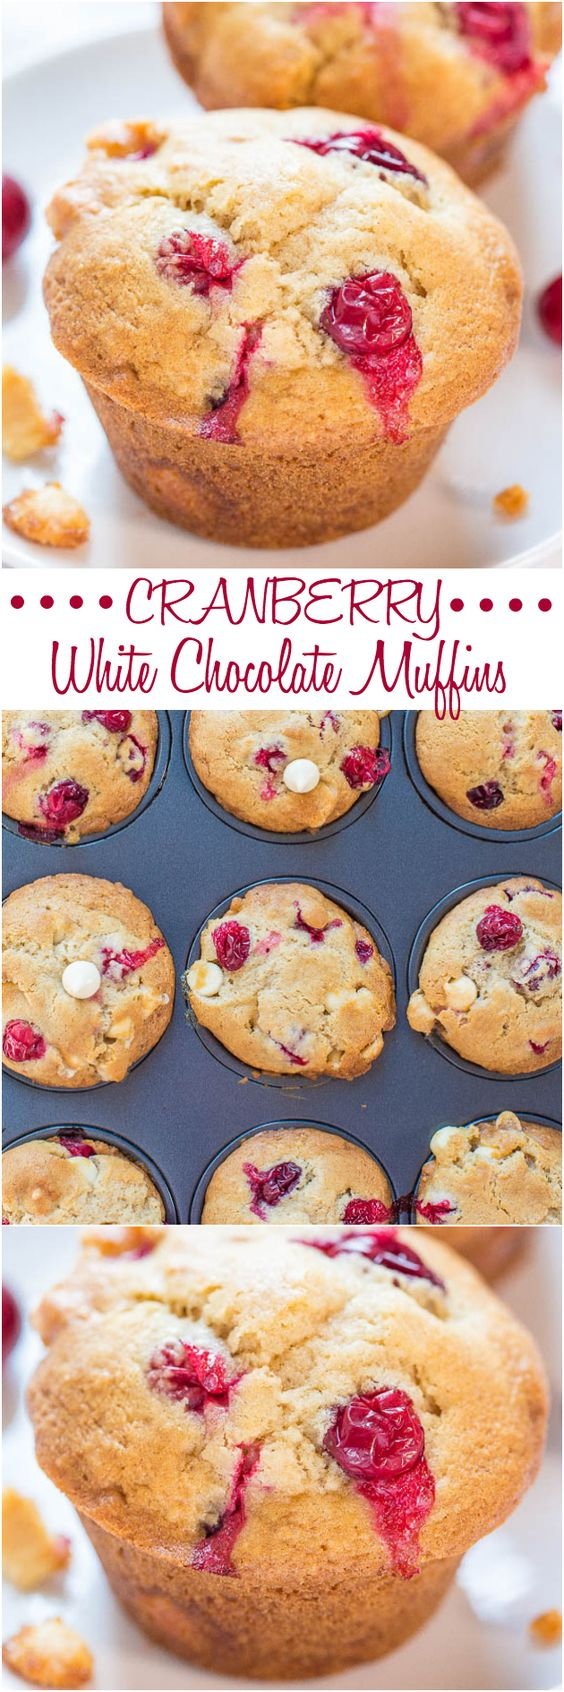 Cranberry White Chocolate Muffins | Cranberry orange ...